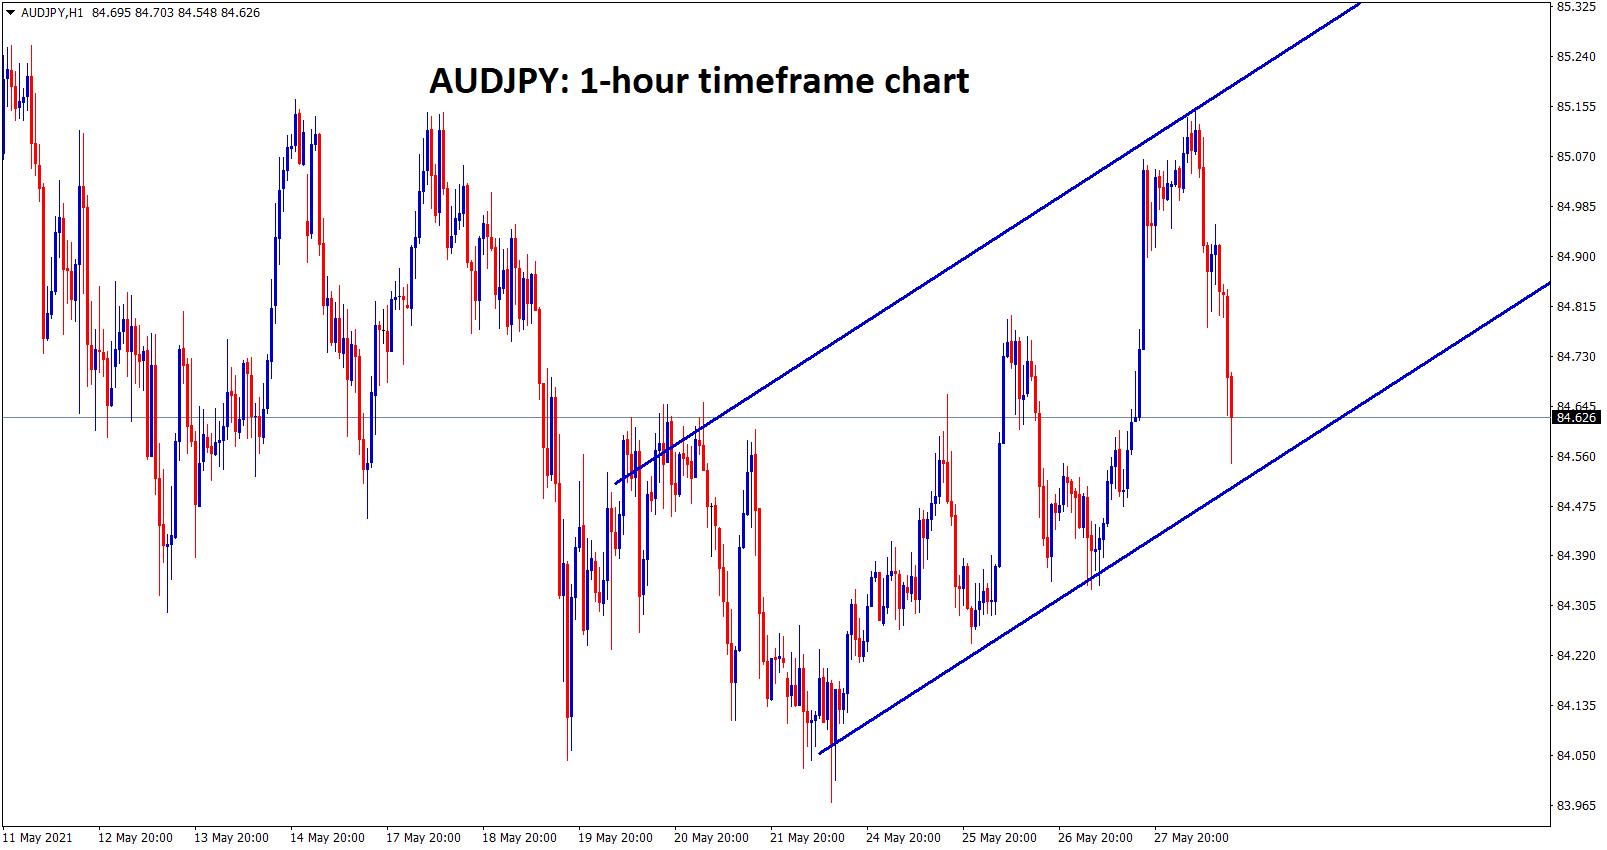 AUDJPY is moving in an Uptrend channel range in 1 hour chart